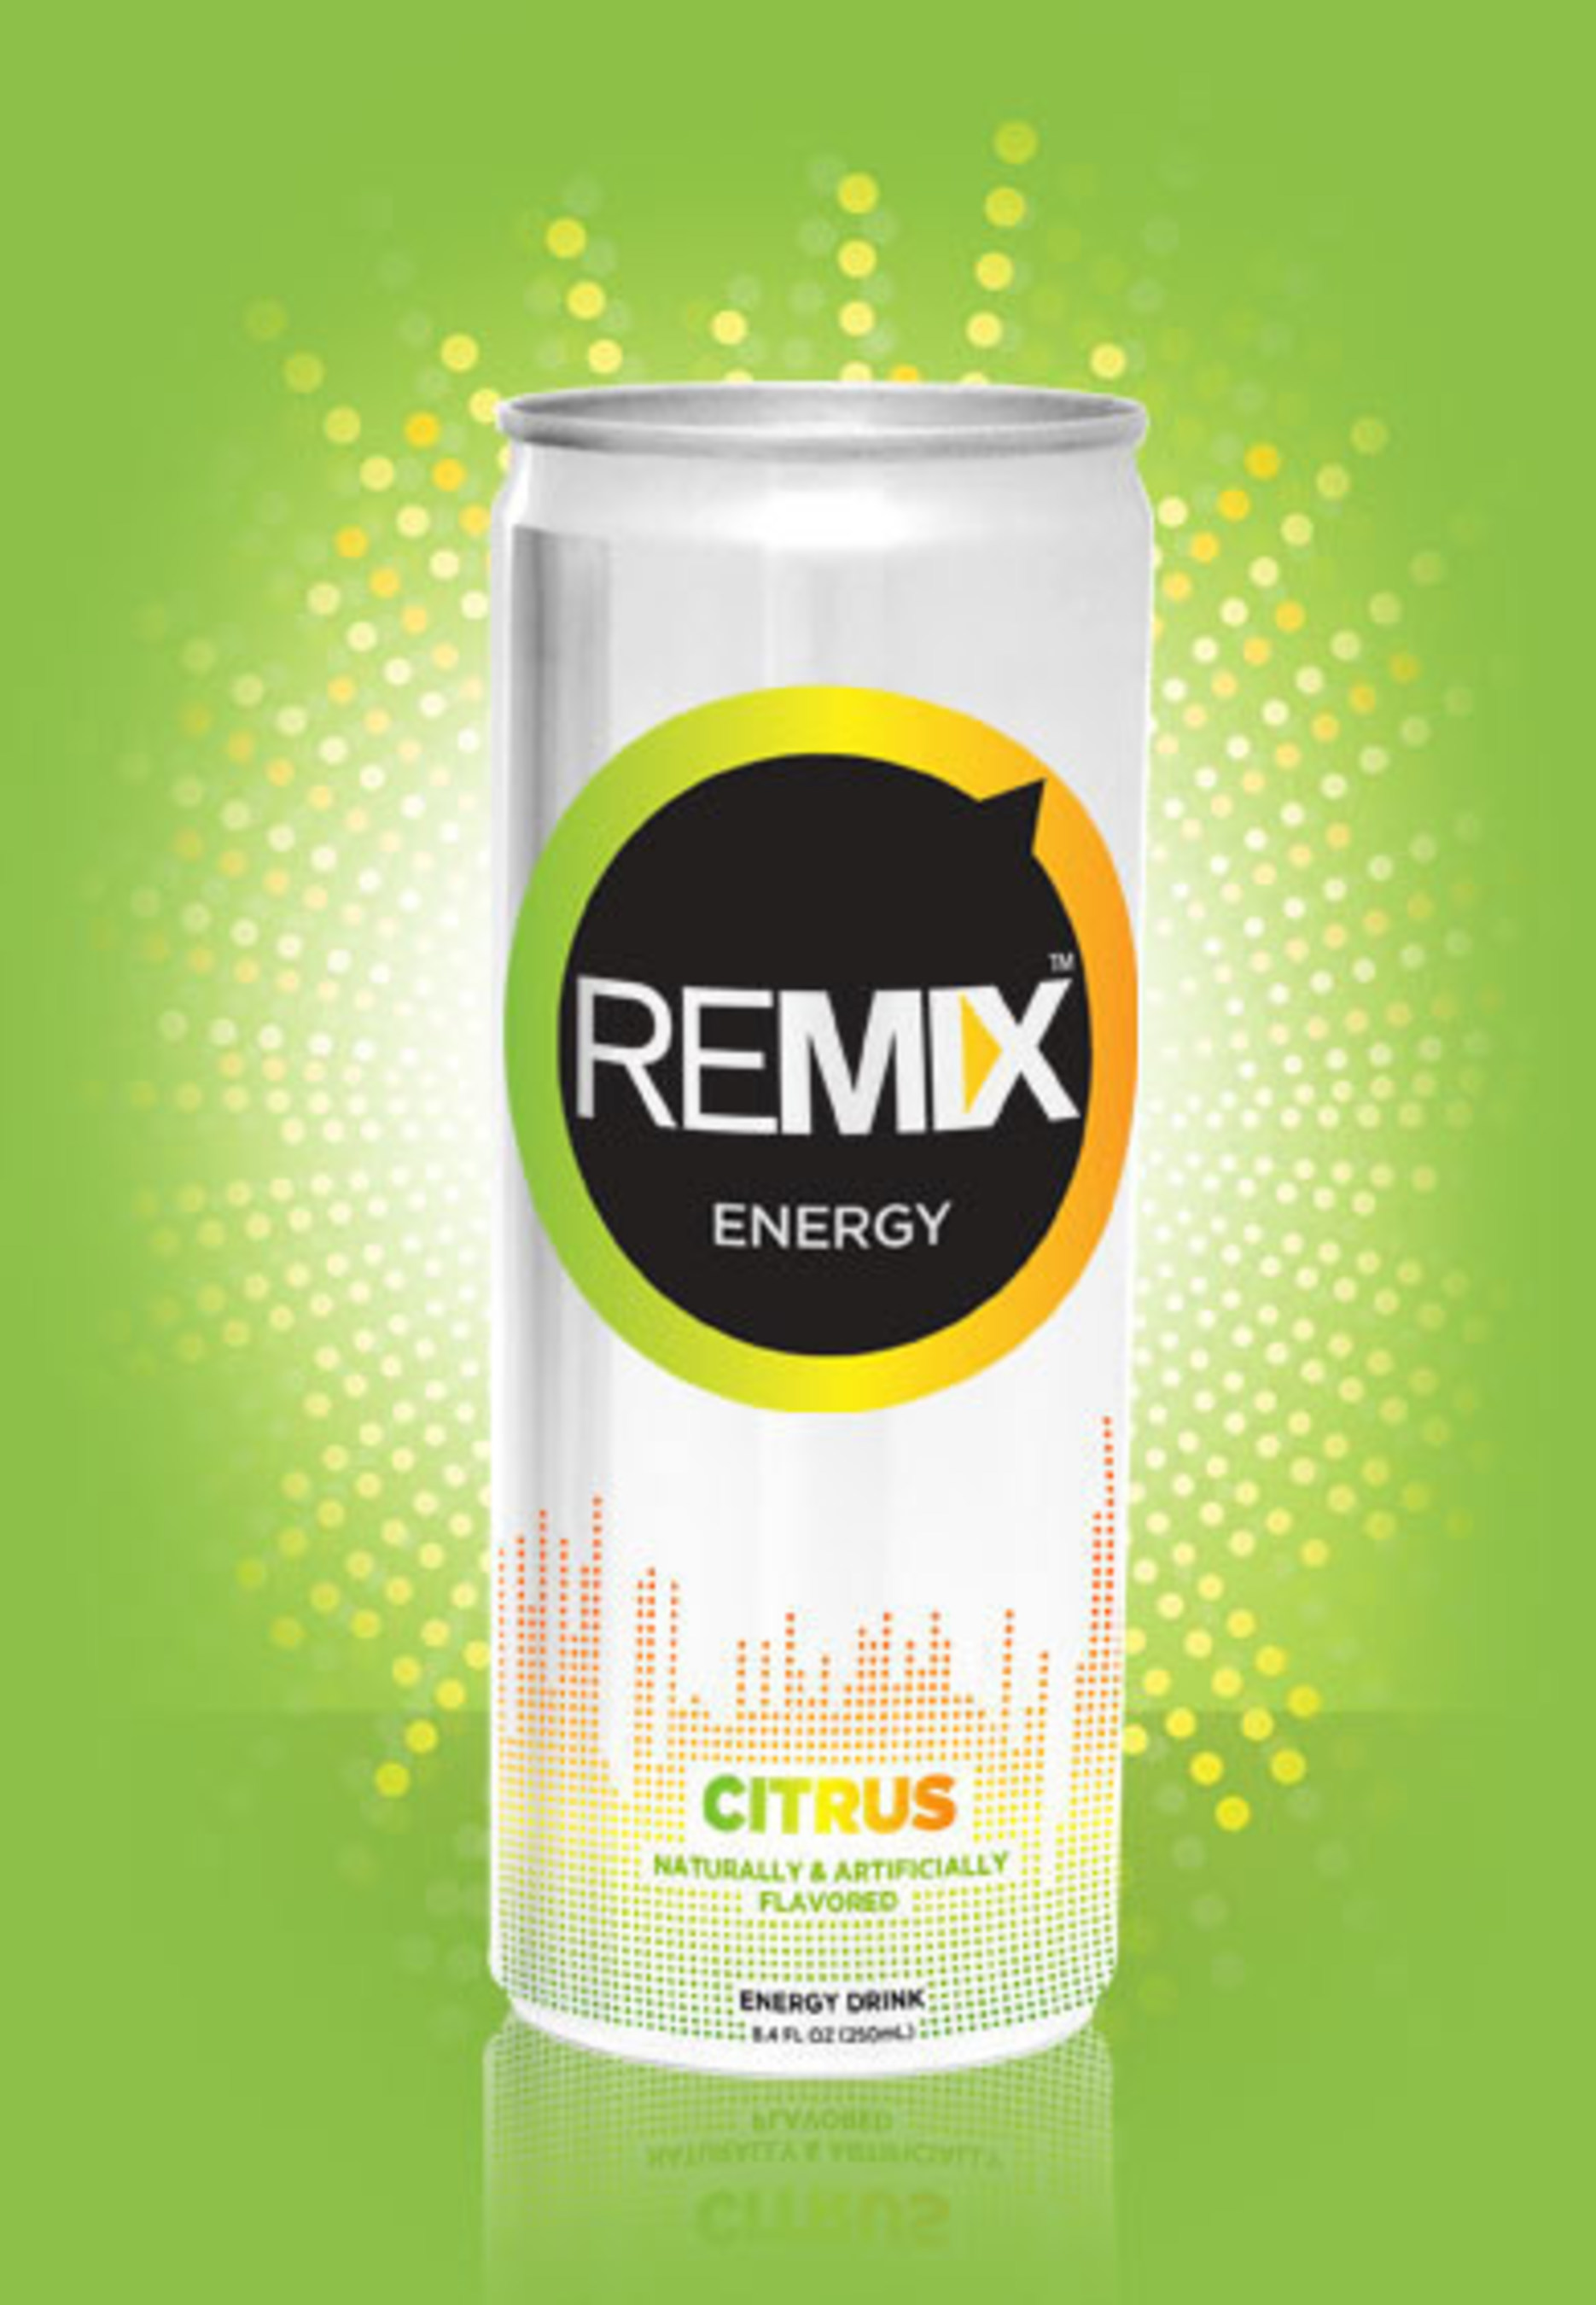 REMIX Brands Announce the Launch of Its New Beverage, REMIX Energy